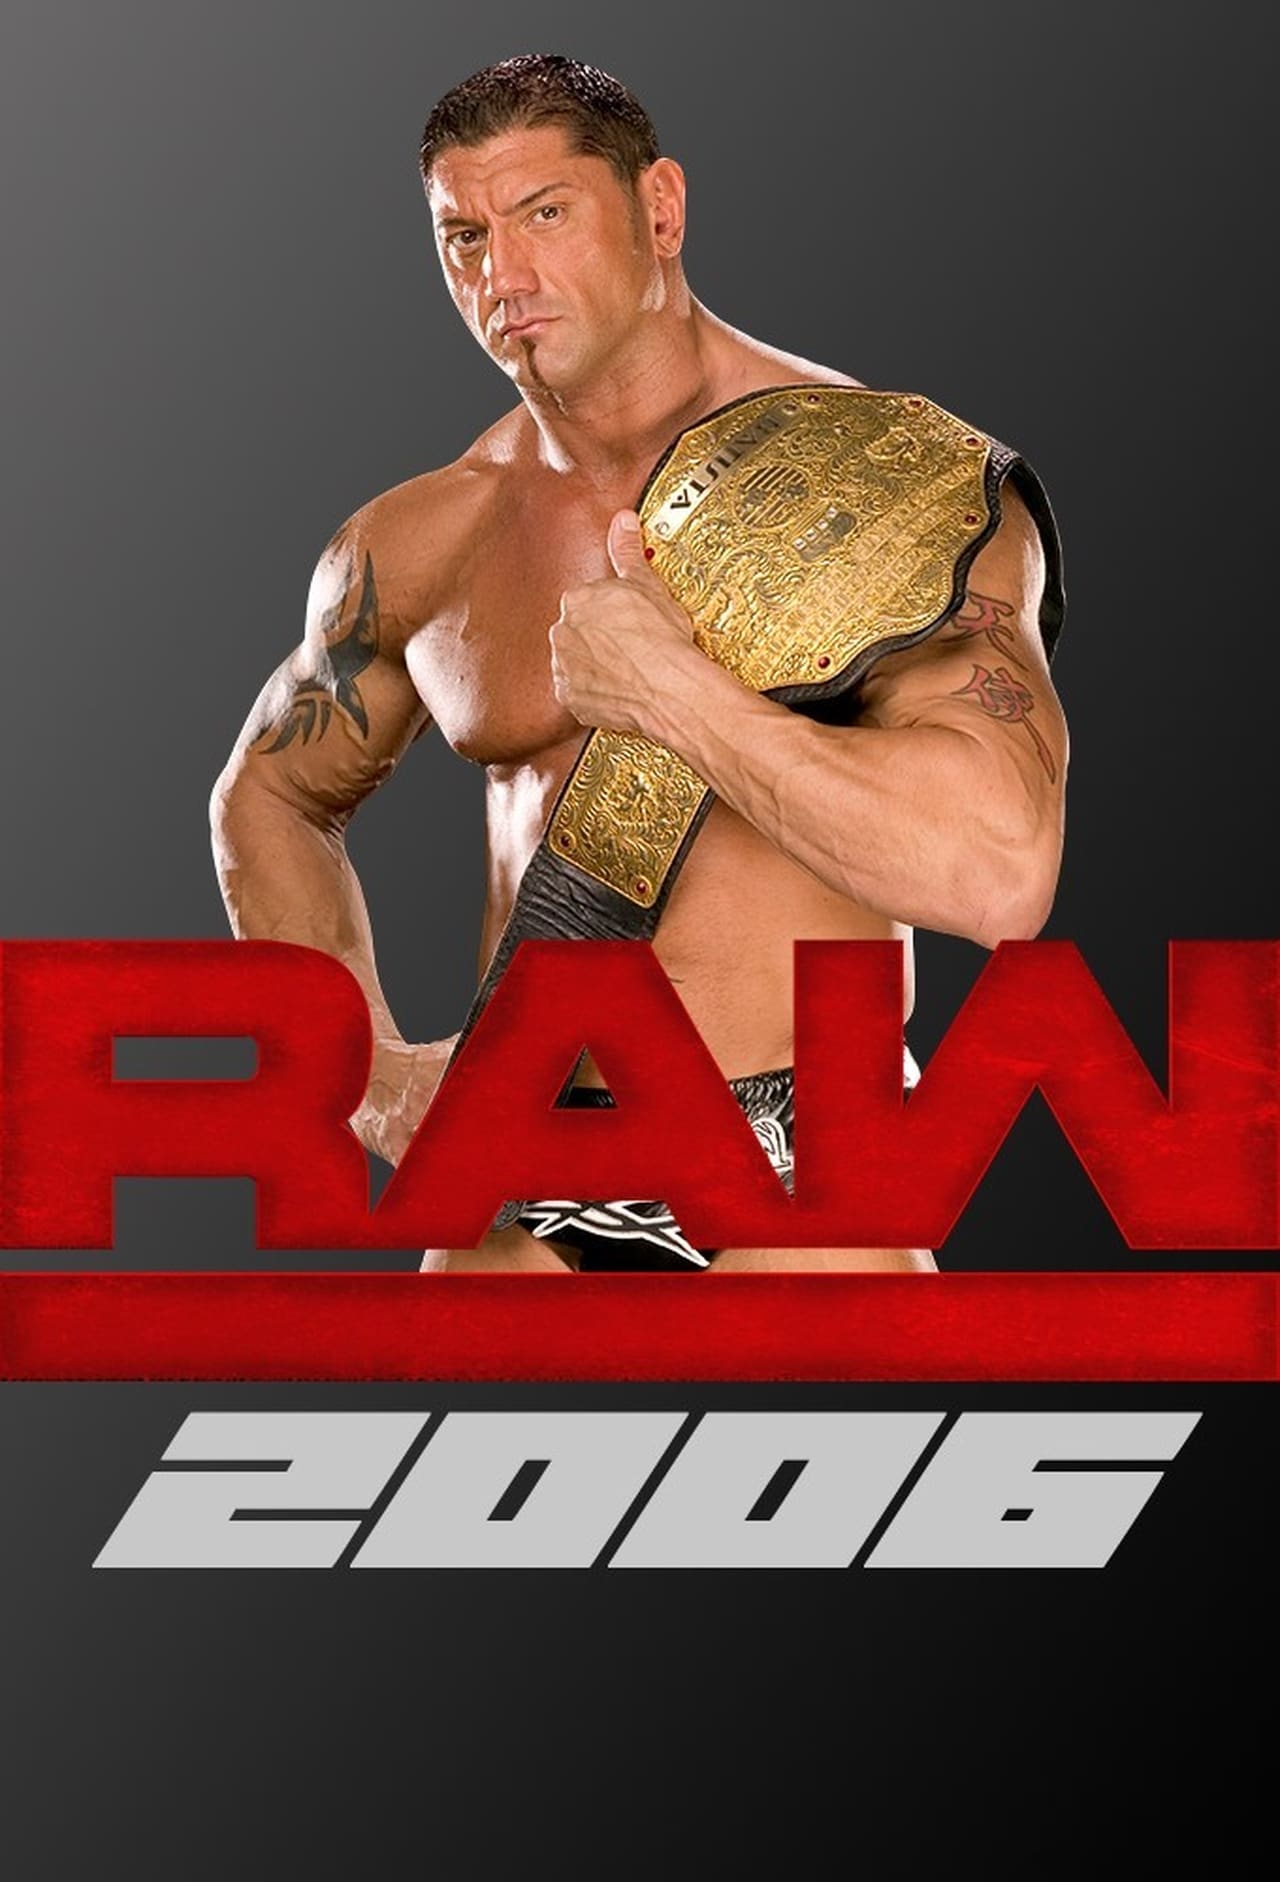 Putlocker Wwe Raw Season 14 (2006)